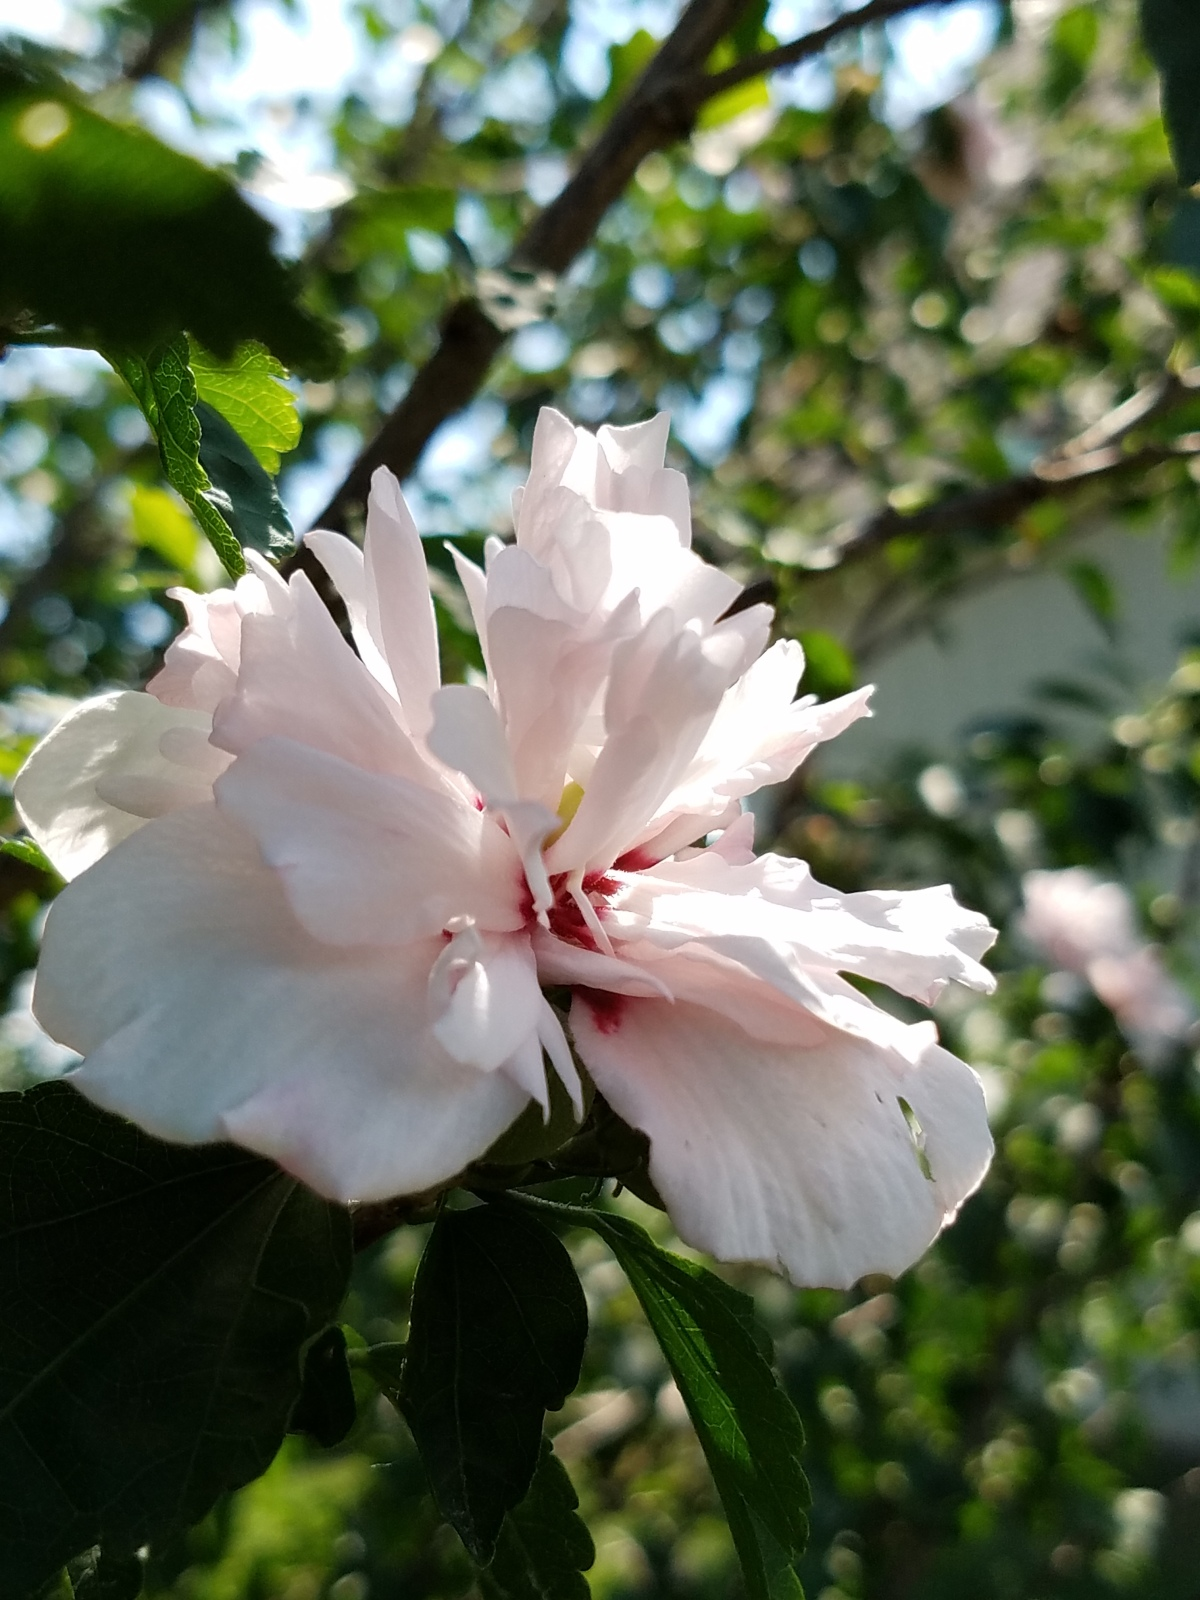 Sunlit Rose of Sharon